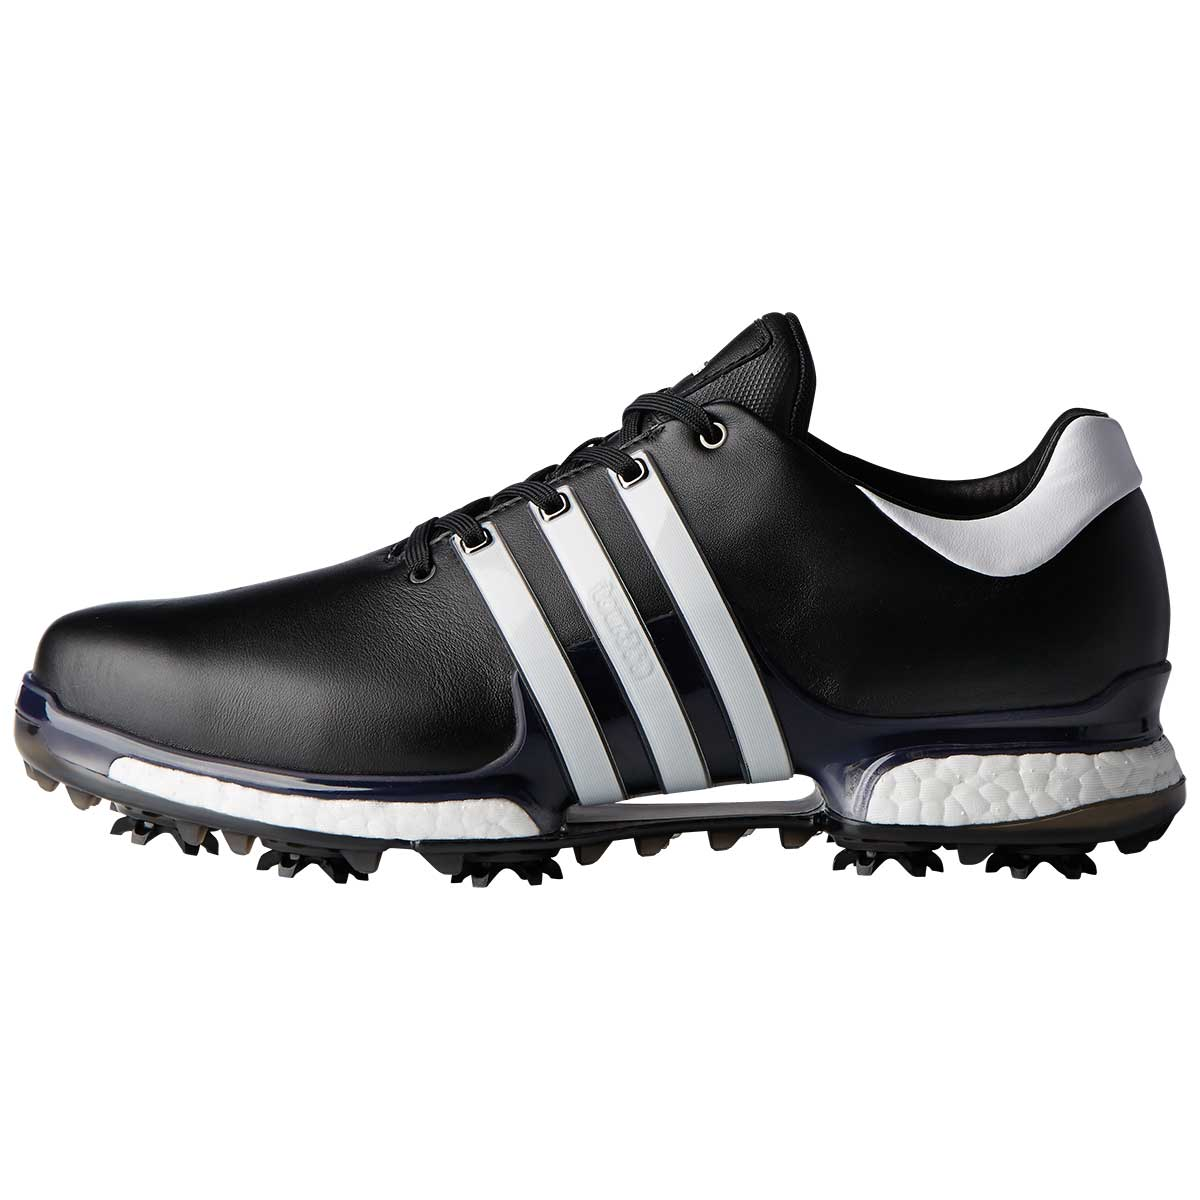 Adidas Men's Tour 360 2.0 Black/White Golf Shoes